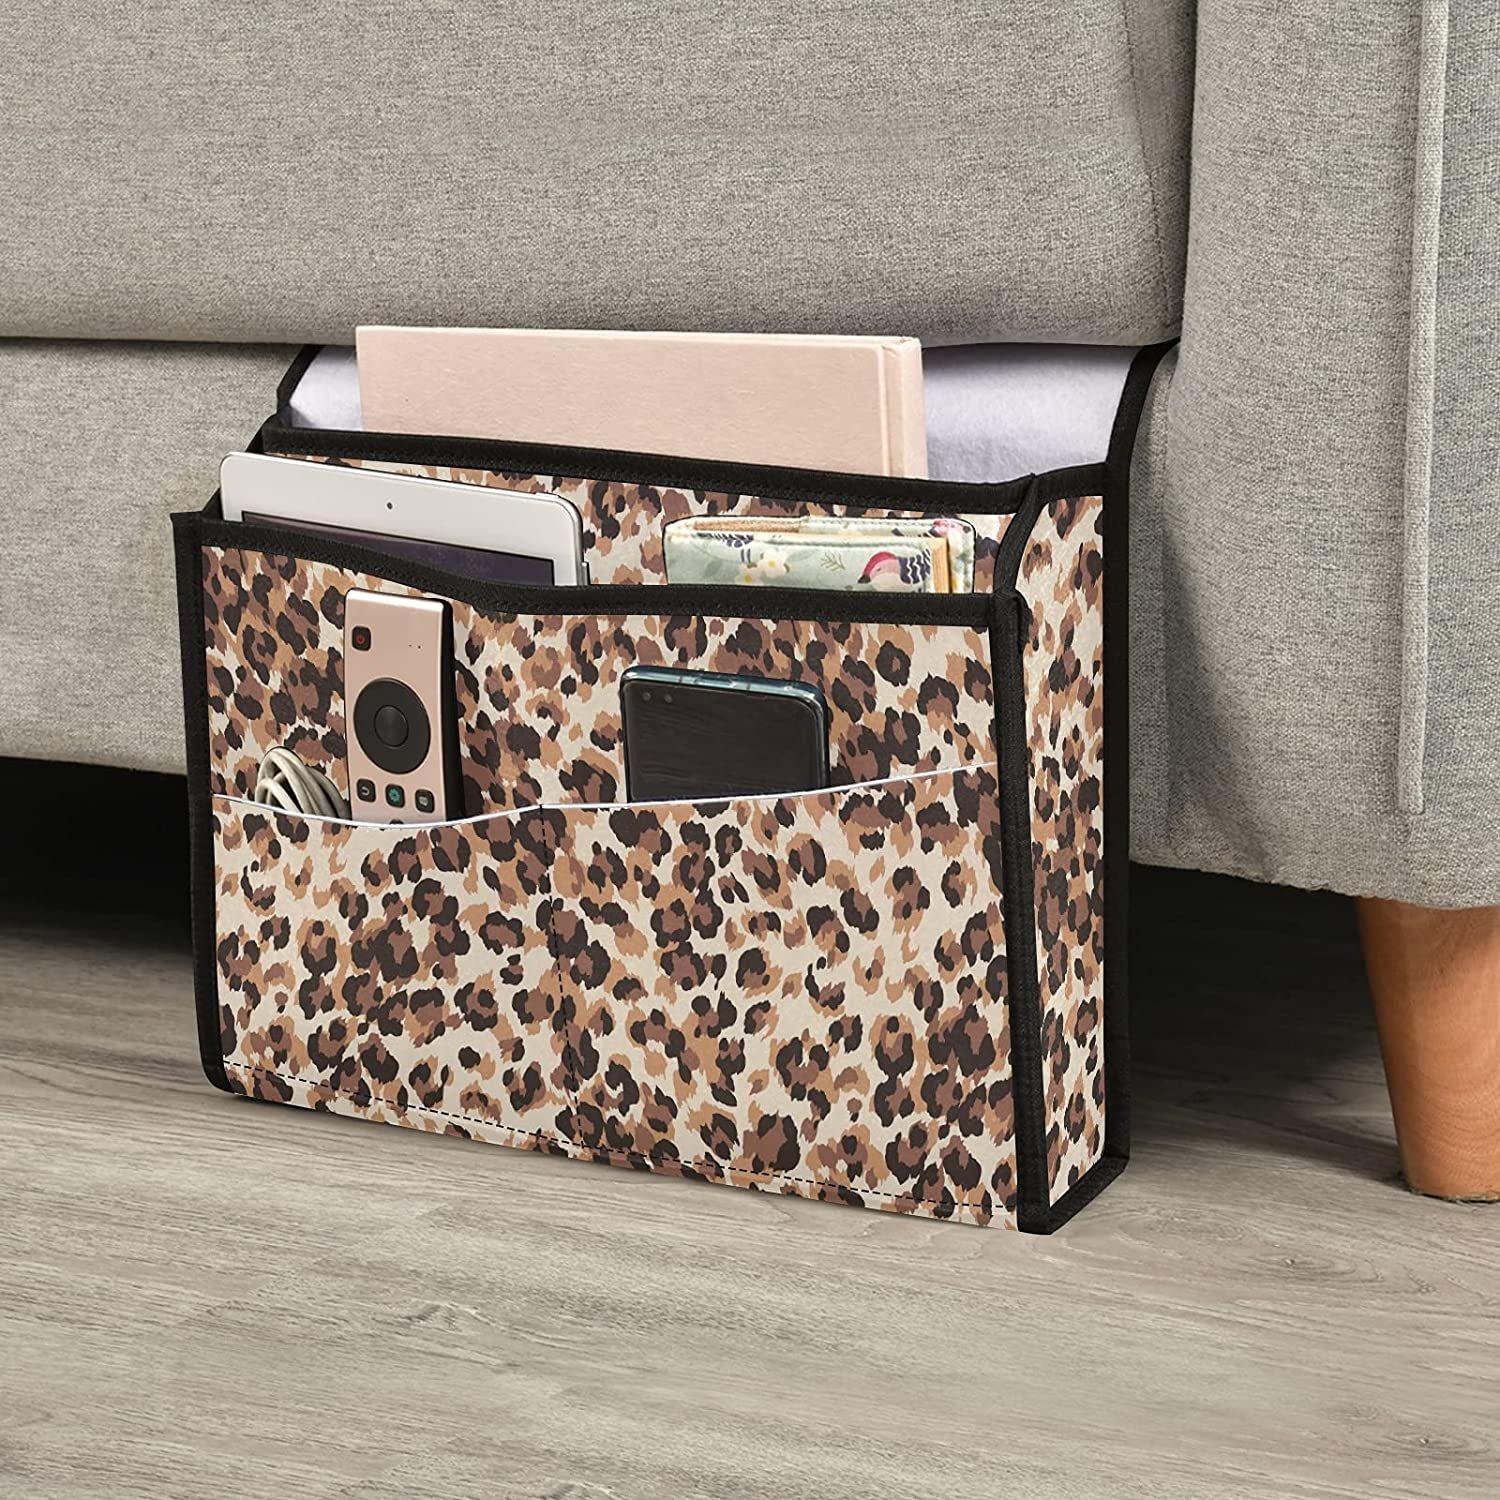 Emelivor Leopard Bedside Caddy Hanging Storage Ranking TOP4 Today's only Organizer